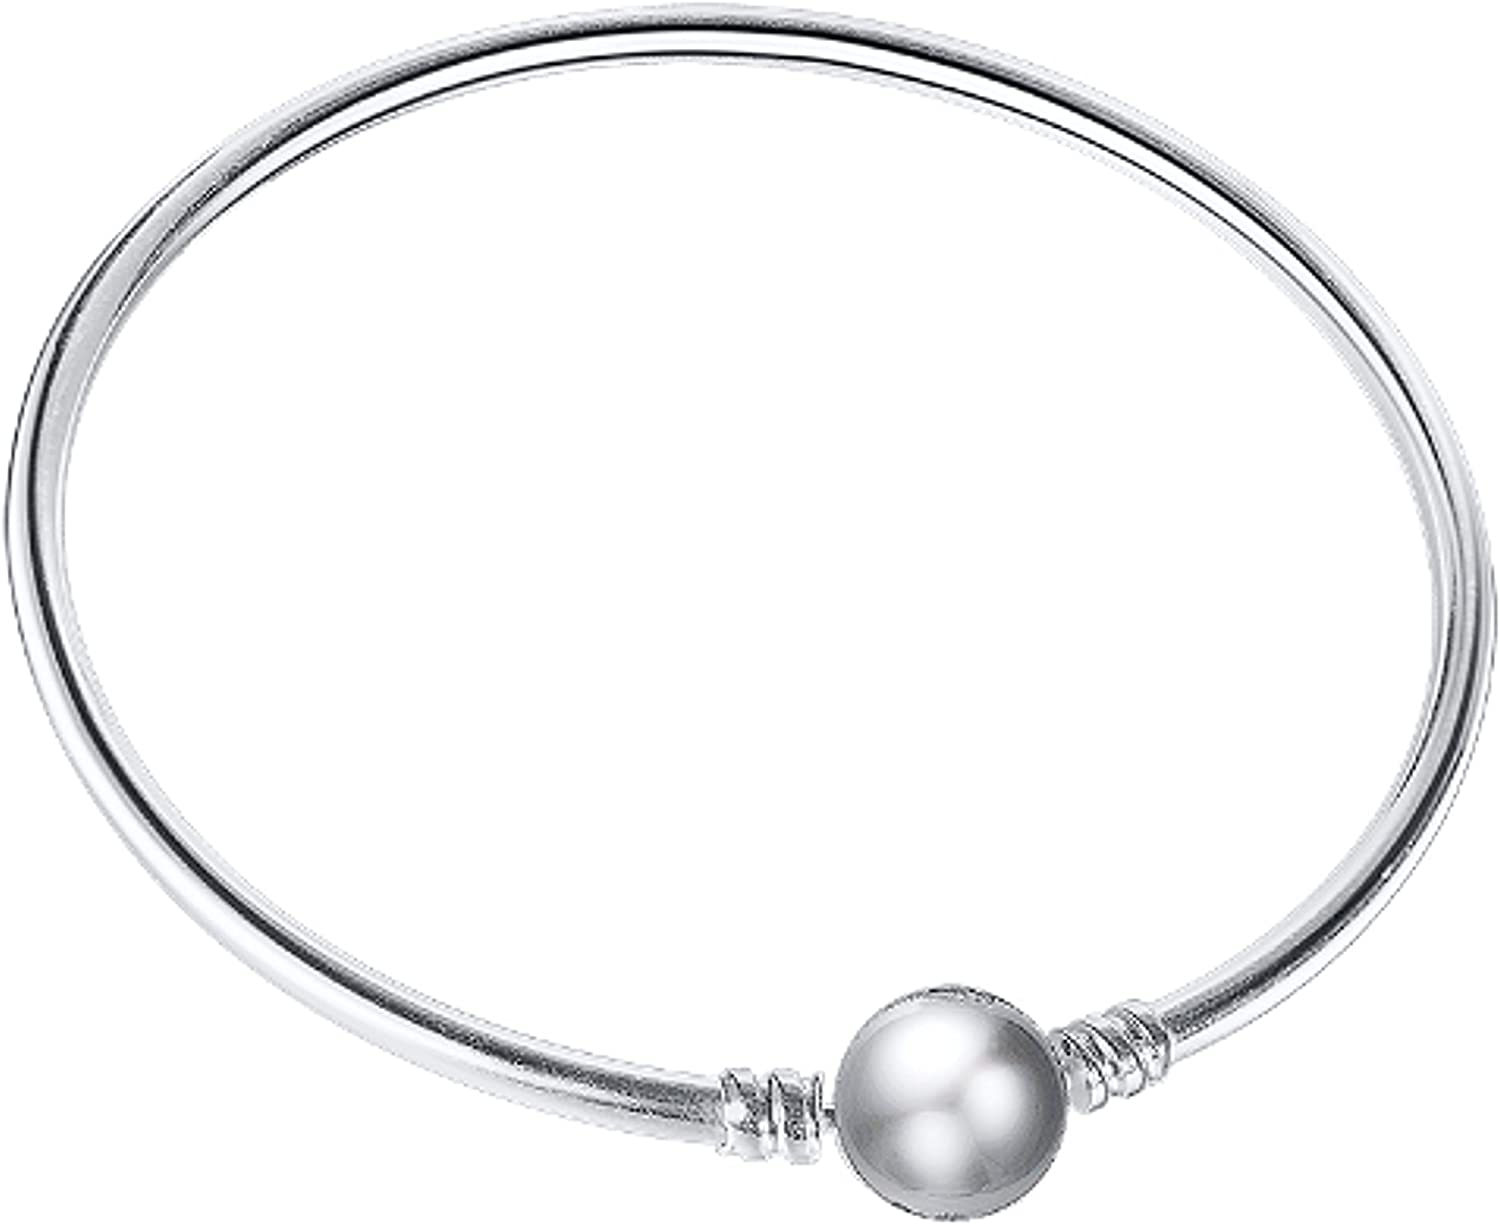 925 Sterling Silver 3mm Fitted Bangle 18cm = 7.09in.